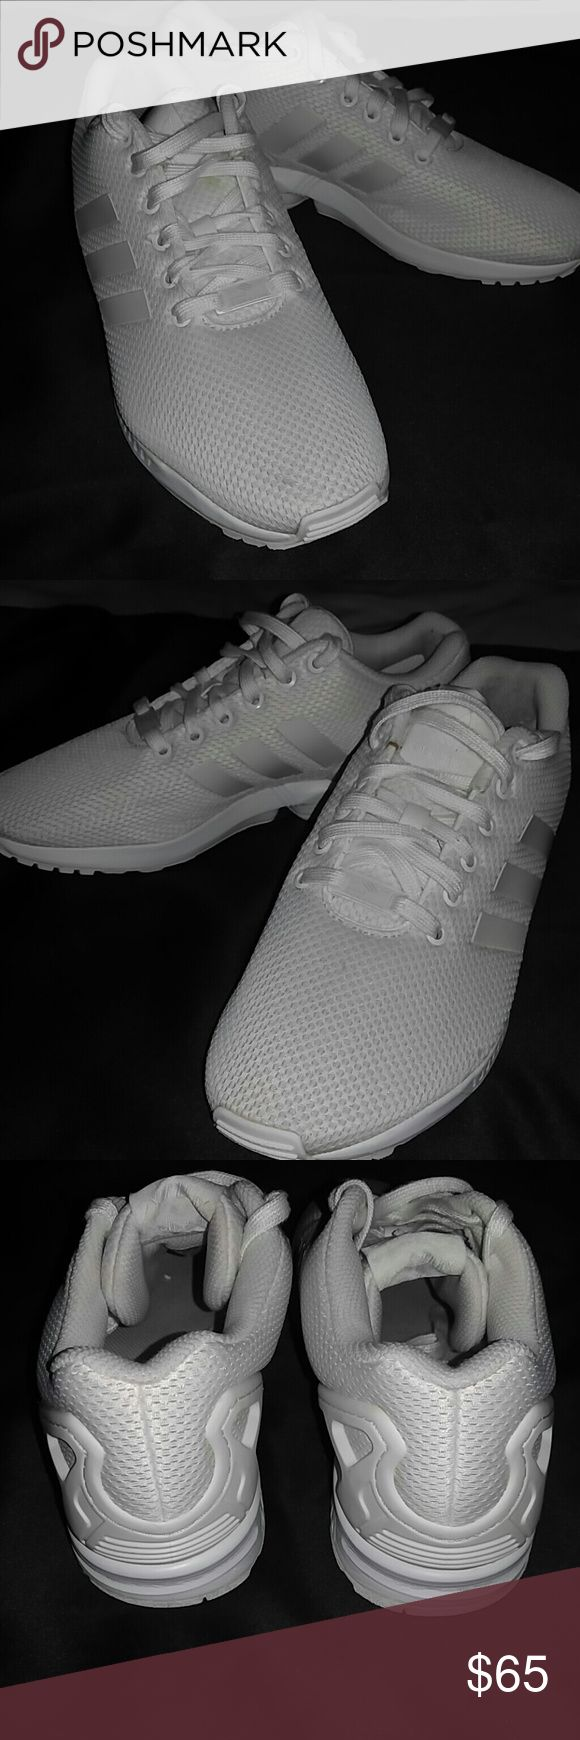 ADIDAS TORSION ZX FLUX EXCELLENT, practically brand new, used condition. All white. Adidas Shoes Sneakers